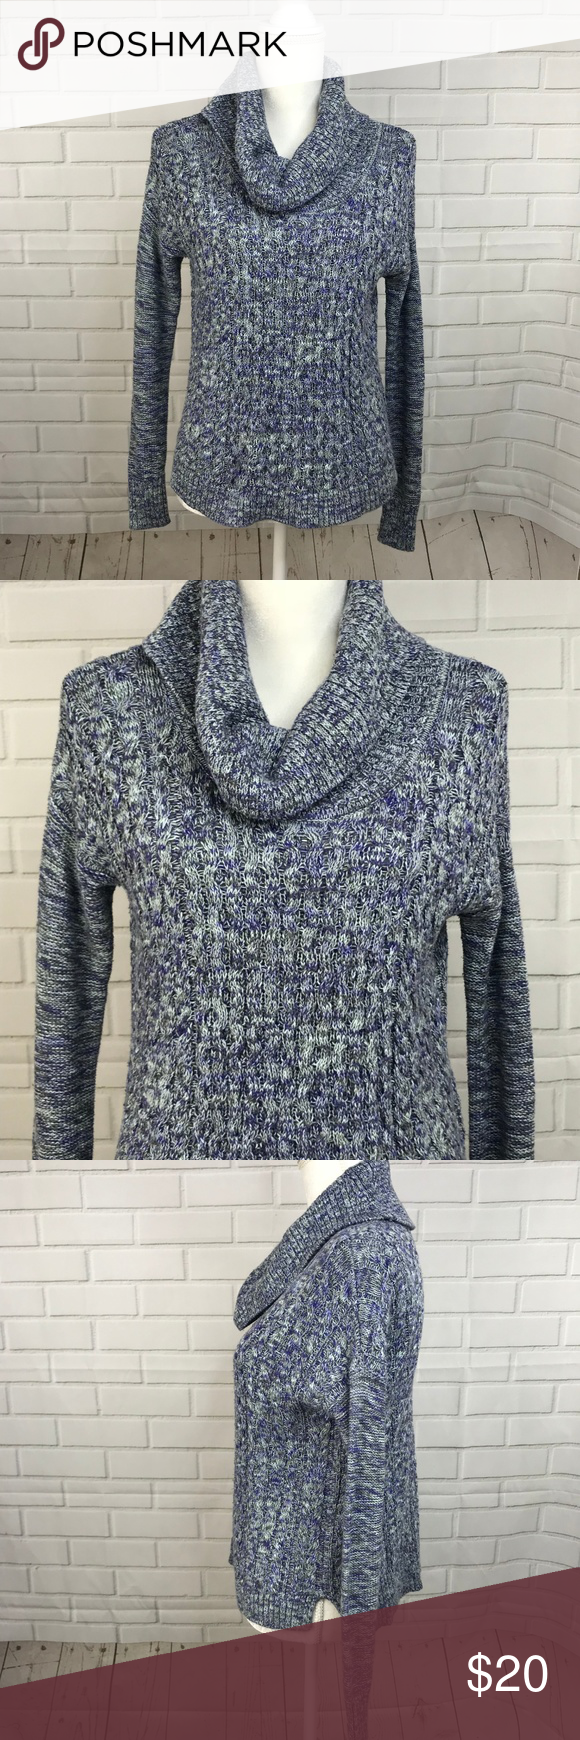 American Eagle Outfitters Womens Sweater Blue Knit This Is A